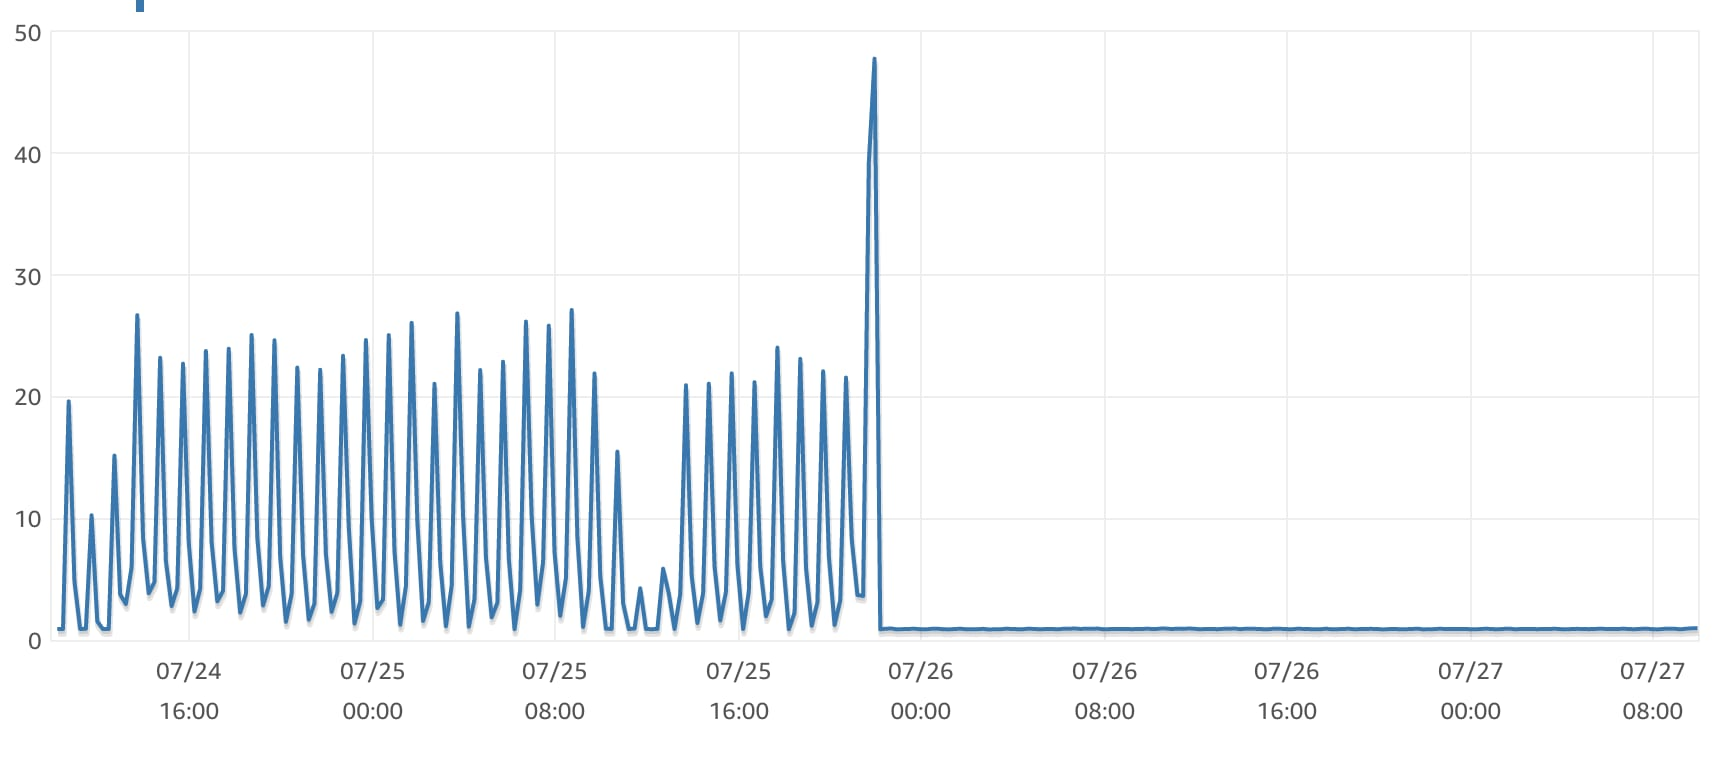 RDS write latency, 15-minute average